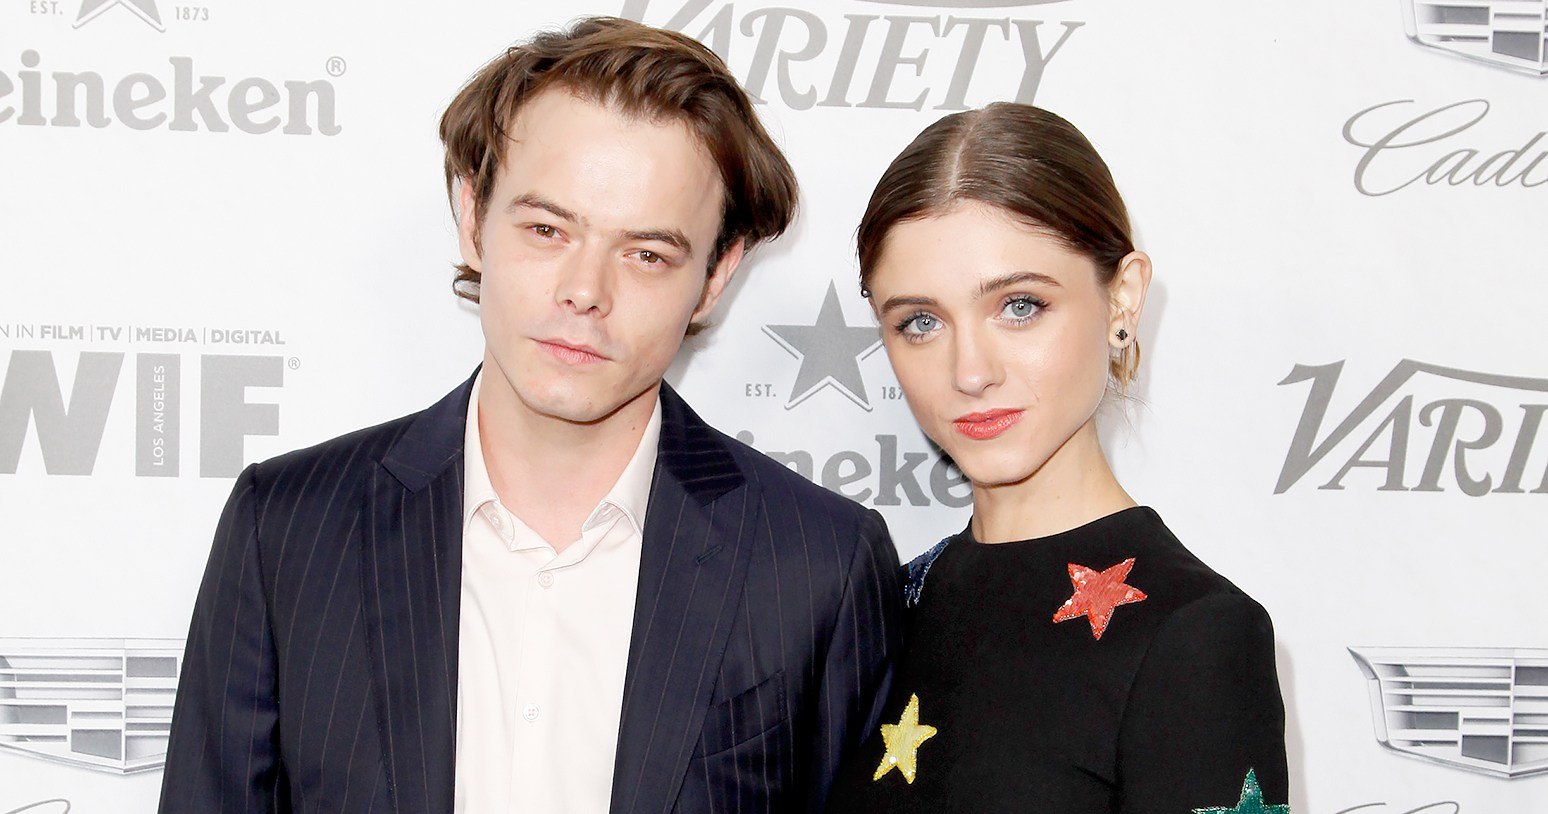 Stranger Things' Charlie Heaton and Natalia Dyer Show PDA at Pre-Emmys Parties